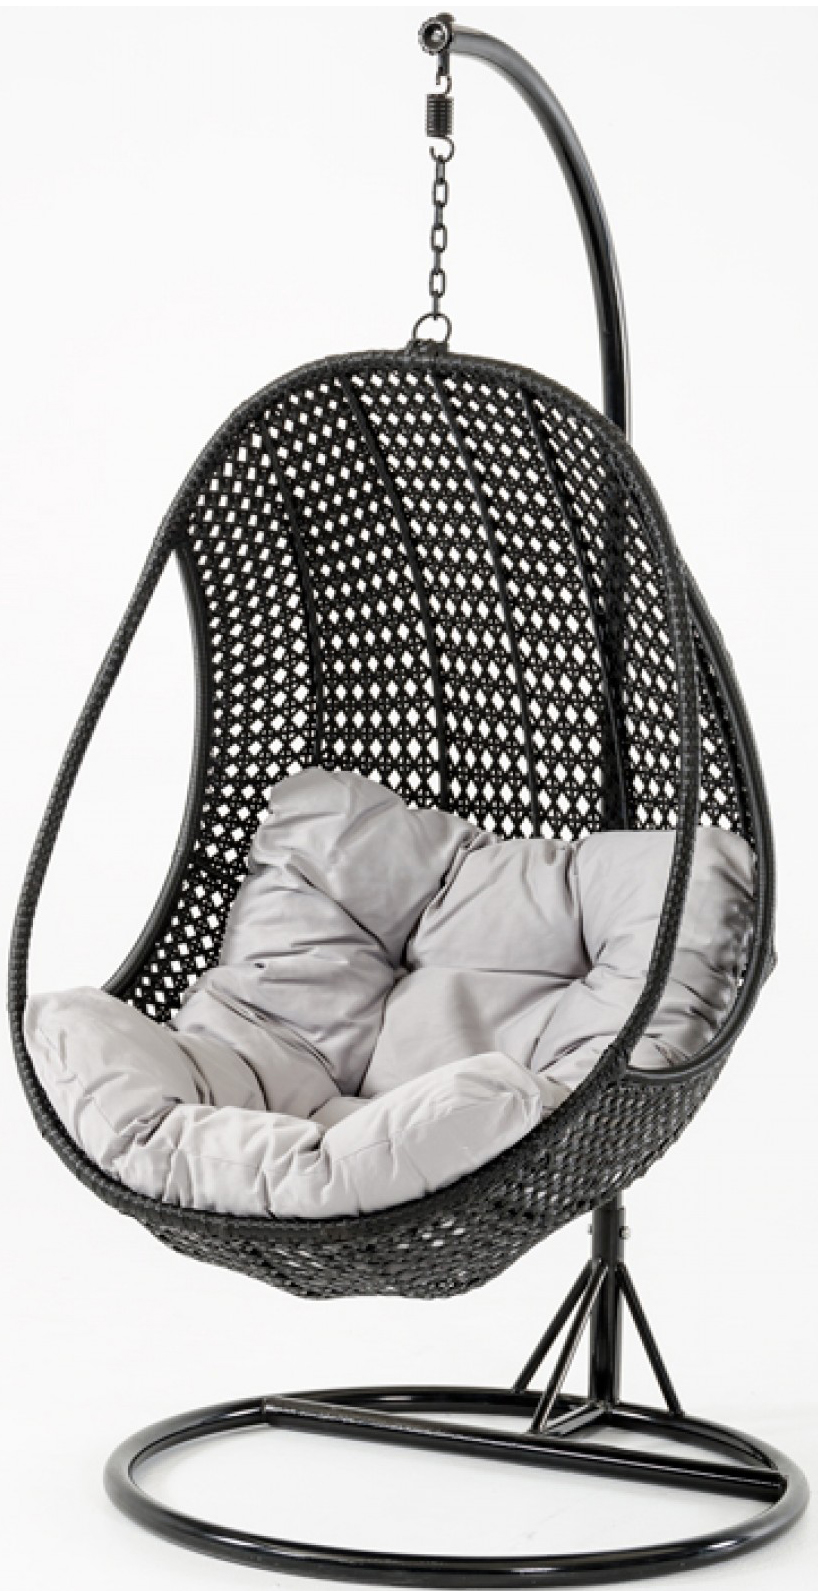 find a deal on a hanging chair for outdoors at AdvancedInteriorDesigns.com